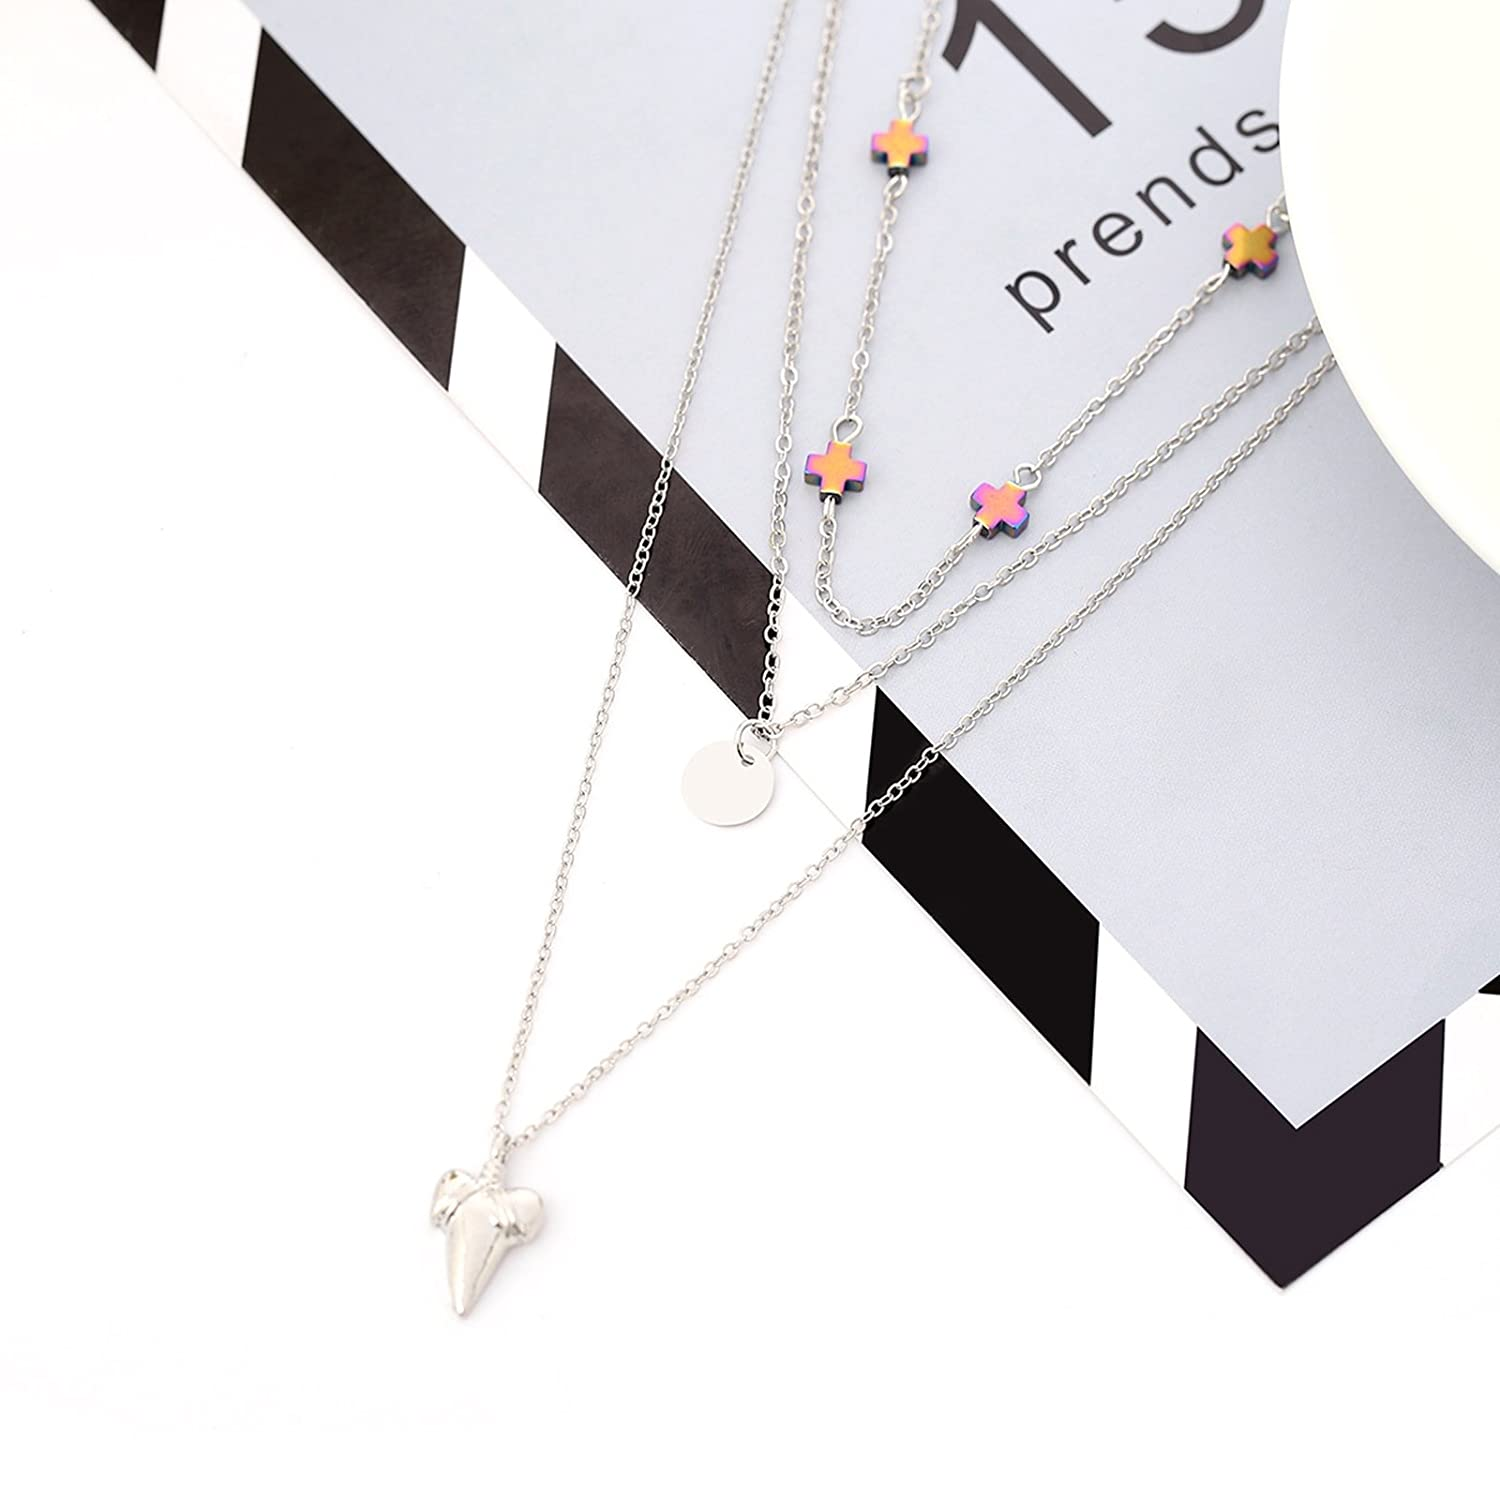 Bishilin Alloy Necklace for WomenClavicle Necklace Choker Multilayer Pendant Chain Cross Shark Teeth Round